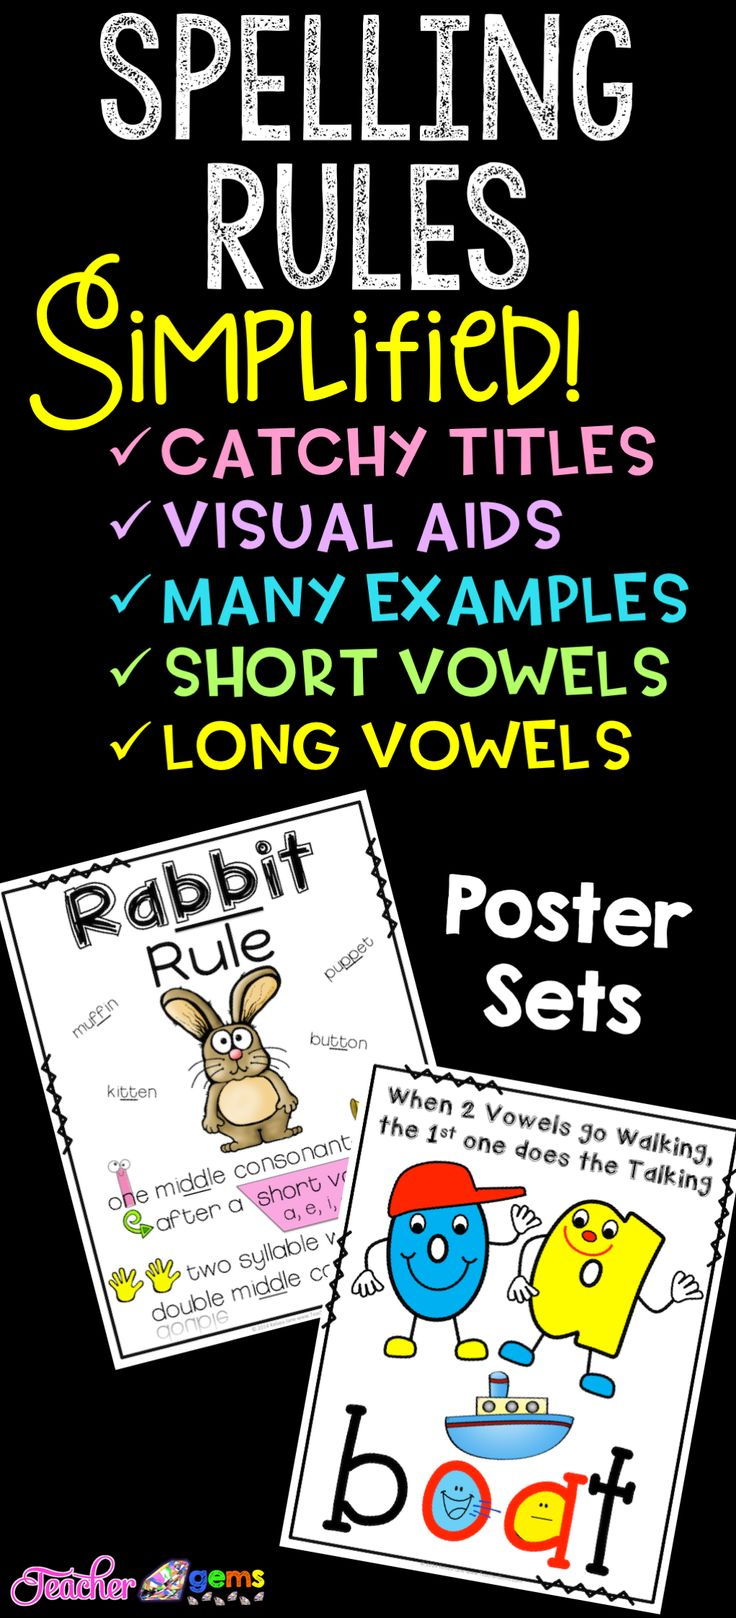 Did you know there are over a dozen spellings for the long 'a' vowel sound alone? Help your students learn about the different spelling rules in the English language with these spelling rules made easy poster sets! #TeacherGems